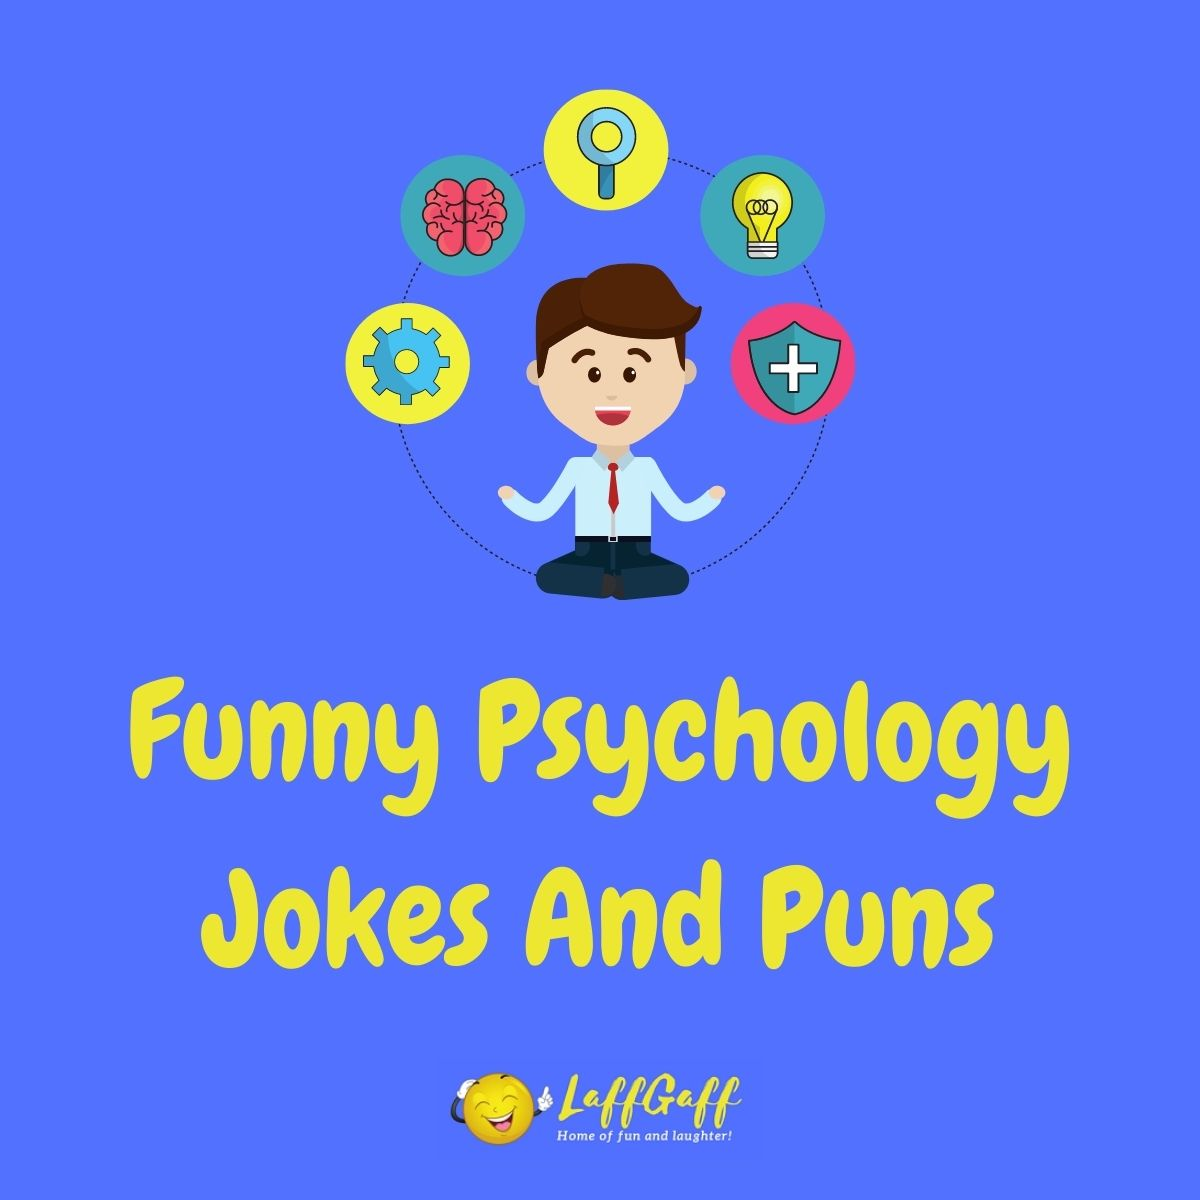 Featured image for a page of funny psychology jokes and puns.